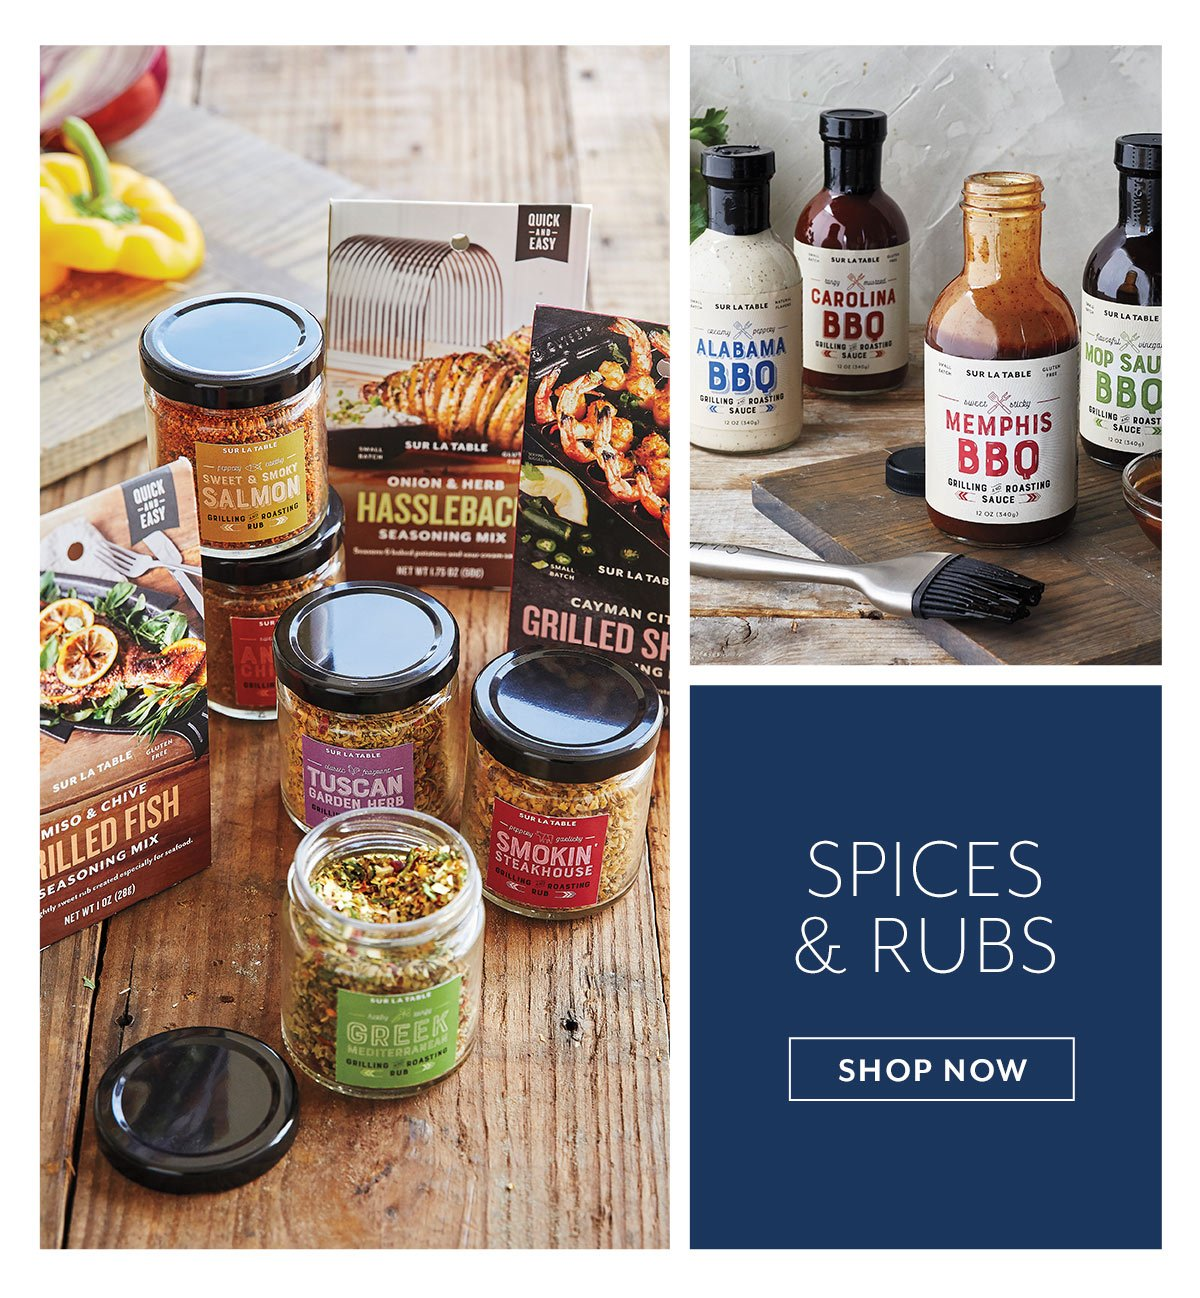 Spices & Rubs